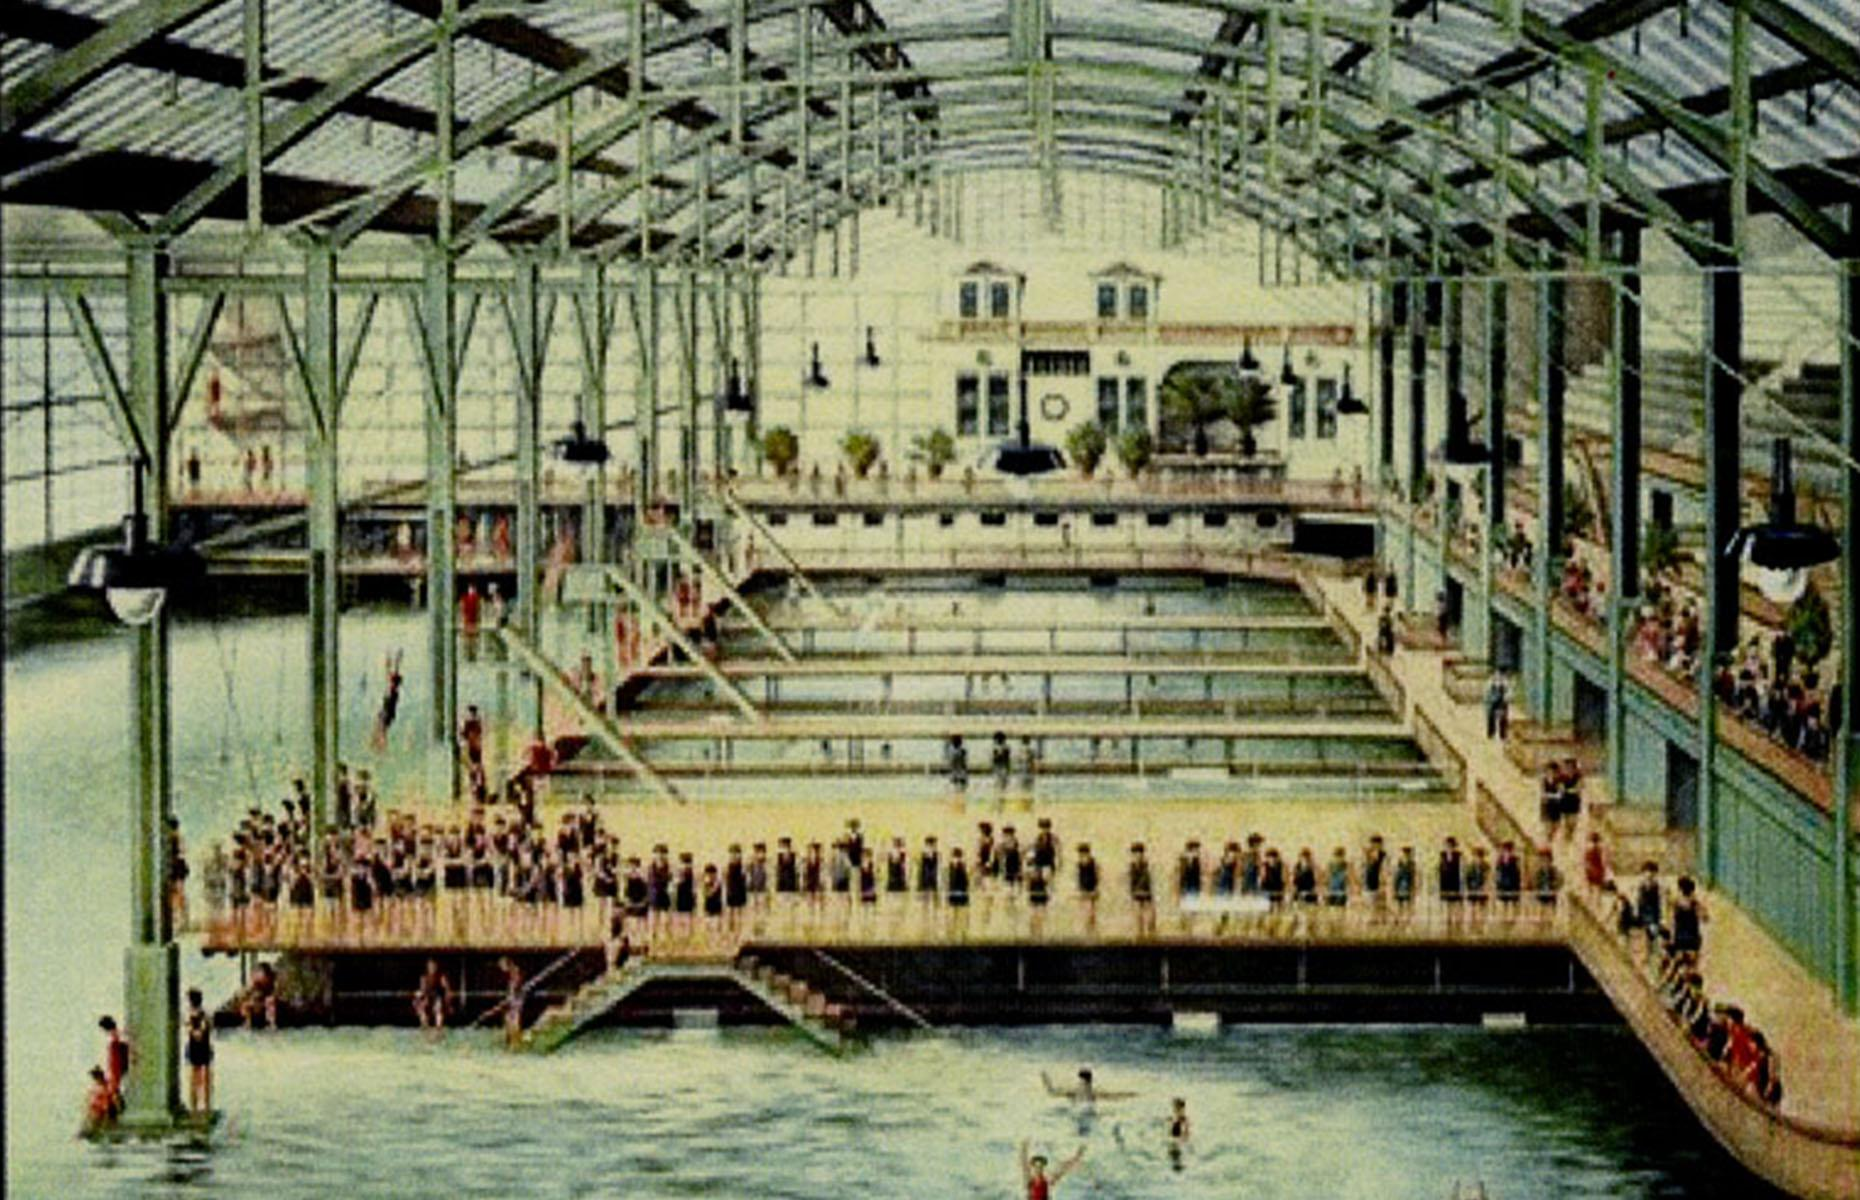 Slide 10 of 39: If you picture San Francisco, attractions such as the Golden Gate Bridge, Alcatraz Island or Lombard Street might spring to mind. But did you know that the city was once home to the world's largest indoor swimming pool establishment? The impressive complex included six saltwater pools and one freshwater pool, with capacity for 10,000 people.